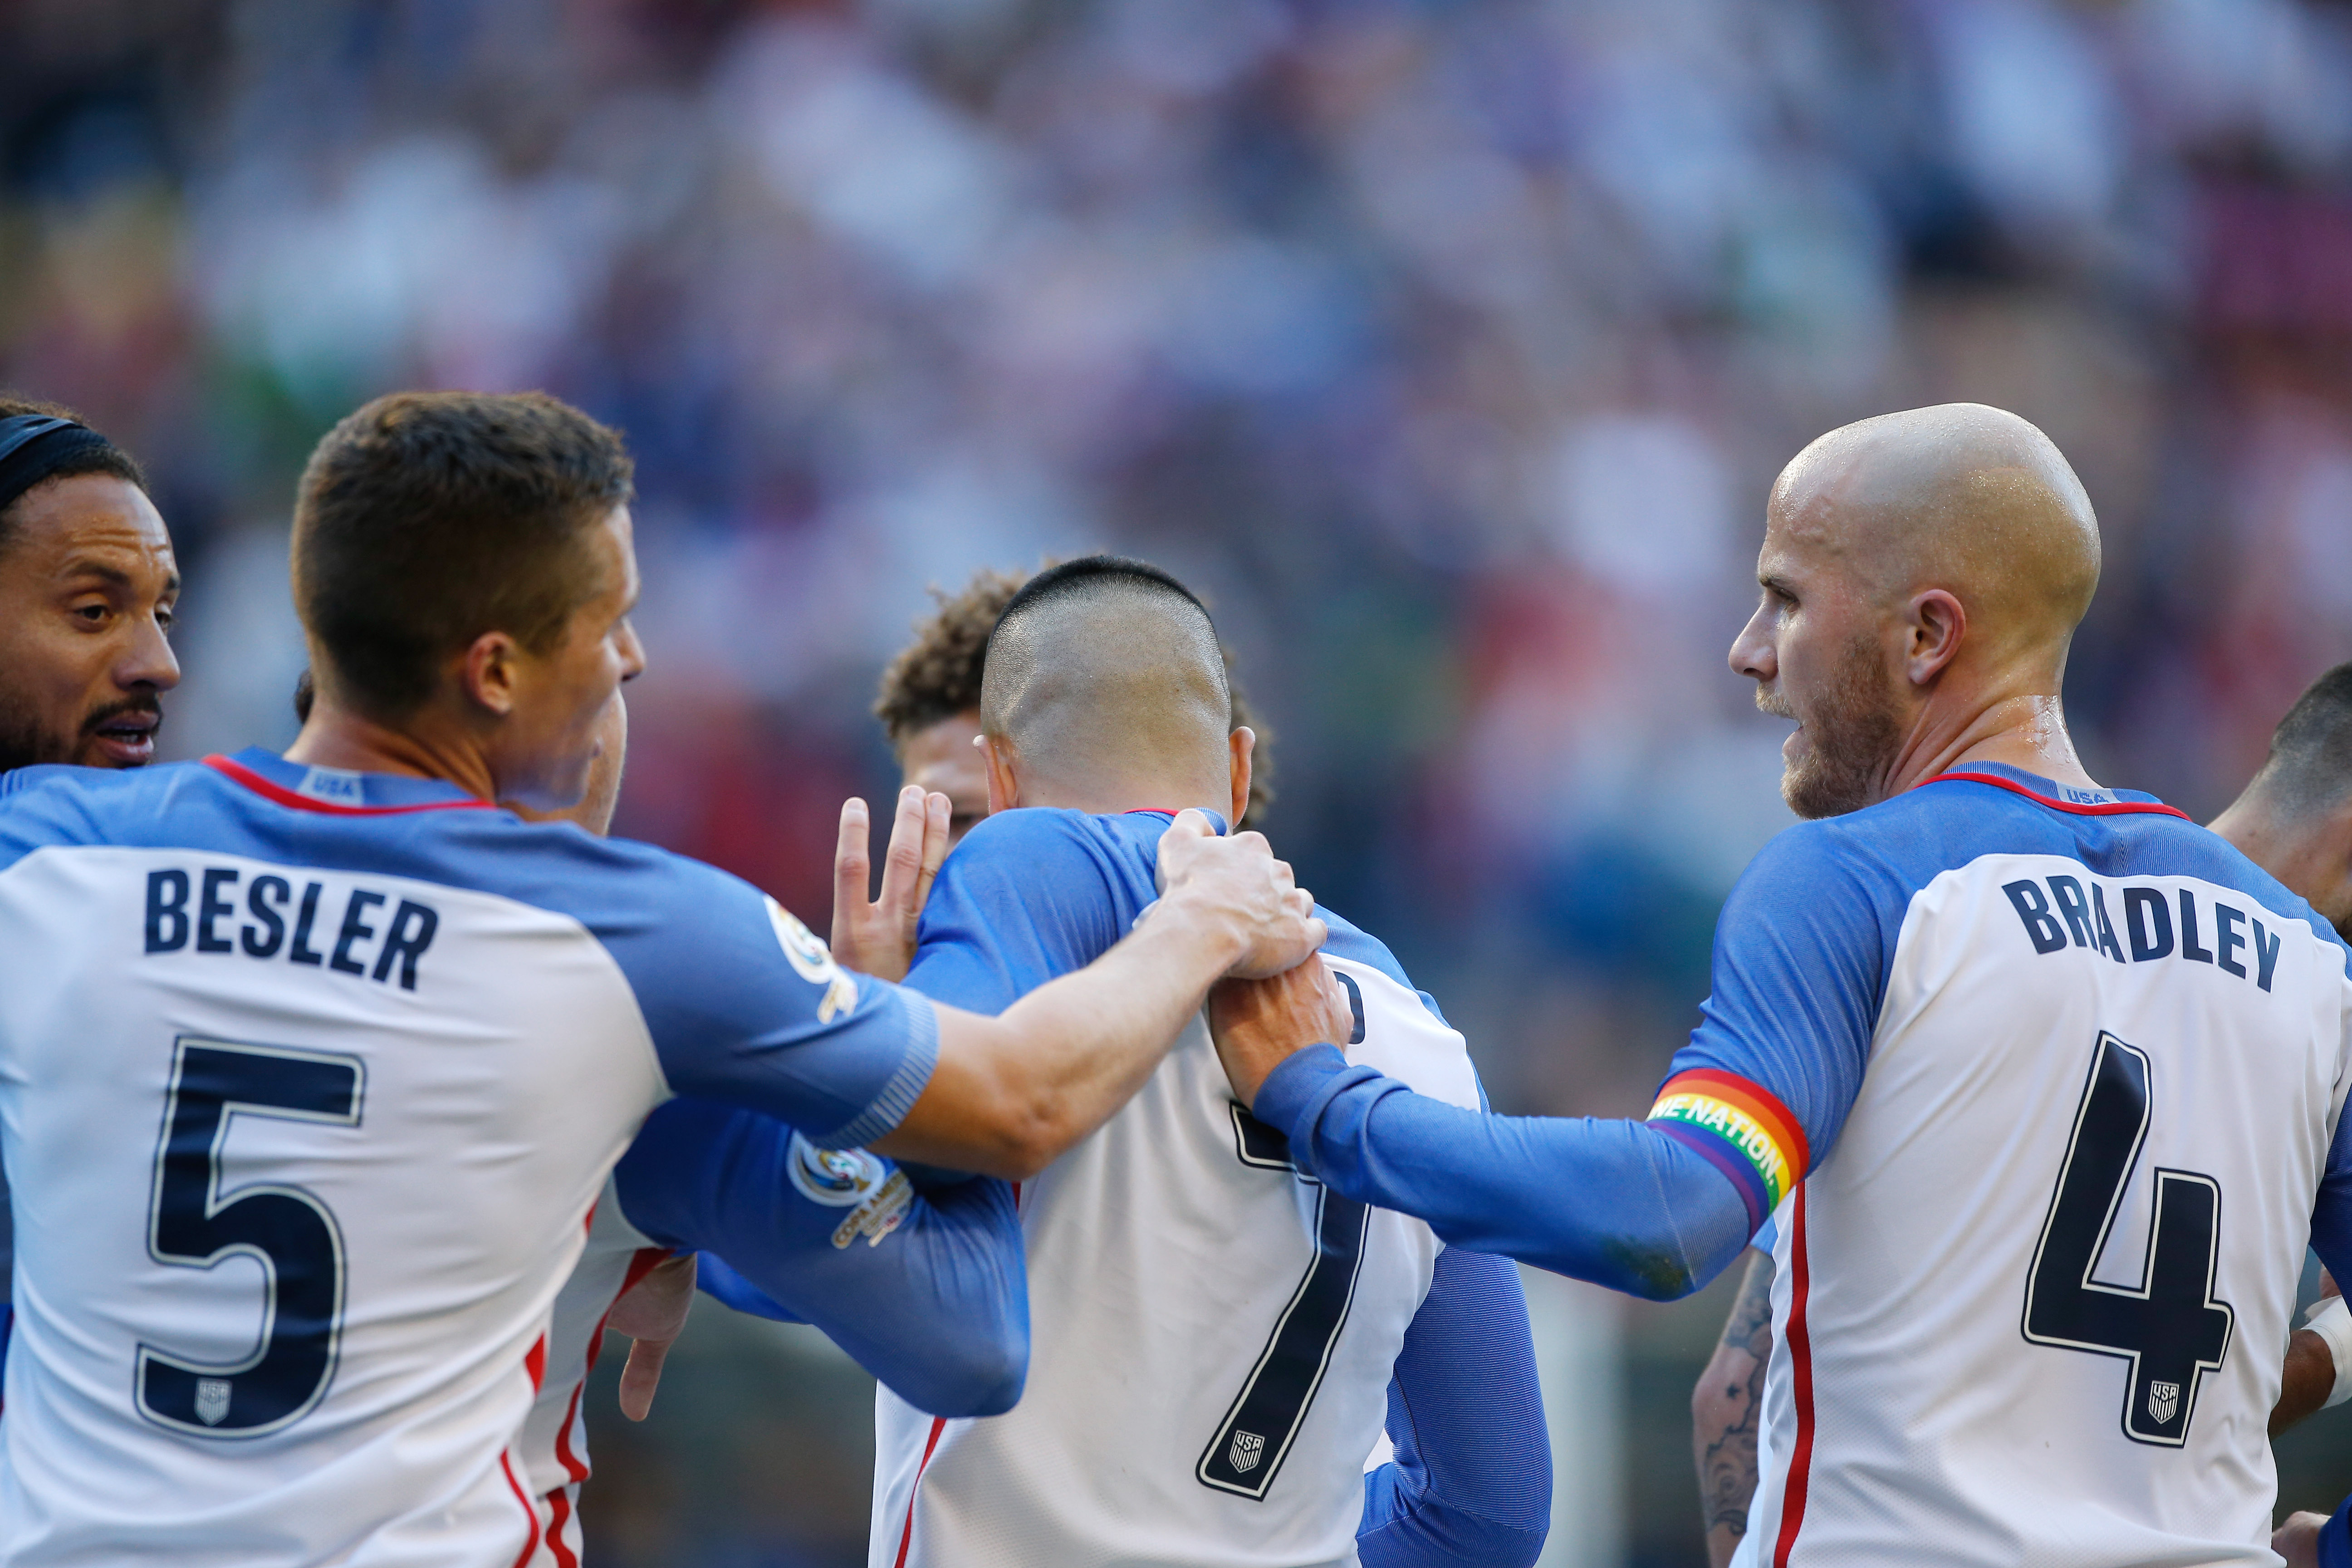 SEATTLE, WA - JUNE 16:  Michael Bradley #4 of the United States celebrates with teammates after Clint Dempsey (not pictured) scored a goal against Ecuador during the 2016 Quarterfinal - Copa America Centenario match at CenturyLink Field on June 16, 2016 in Seattle, Washington. Bradley wore a rainbow colored armband in remembrance of the Orlando shooting victims.  (Photo by Otto Greule Jr/Getty Images)